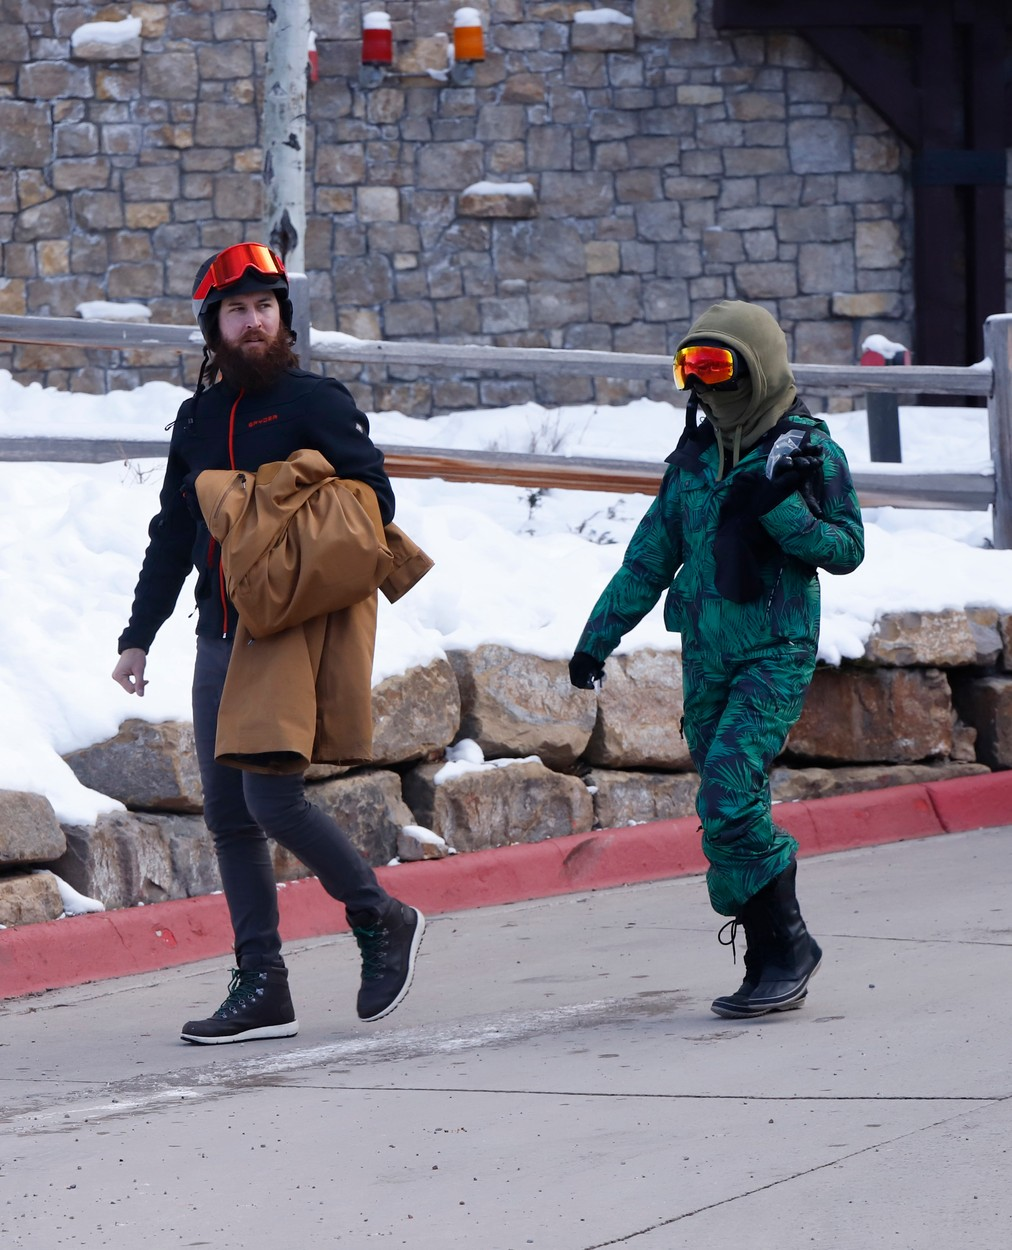 12/29/2019 EXCLUSIVE: Kate Hudson and Danny Fujikawa hit the slopes in Aspen, Colorado. The couple wore matching black helmets and goggles with Kate sporting a patterned ski suit while Danny opted for a solid brown outfit., Image: 490300487, License: Rights-managed, Restrictions: Exclusive NO usage without agreed price and terms. Please contact sales@theimagedirect.com, Model Release: no, Credit line: TheImageDirect.com / The Image Direct / Profimedia